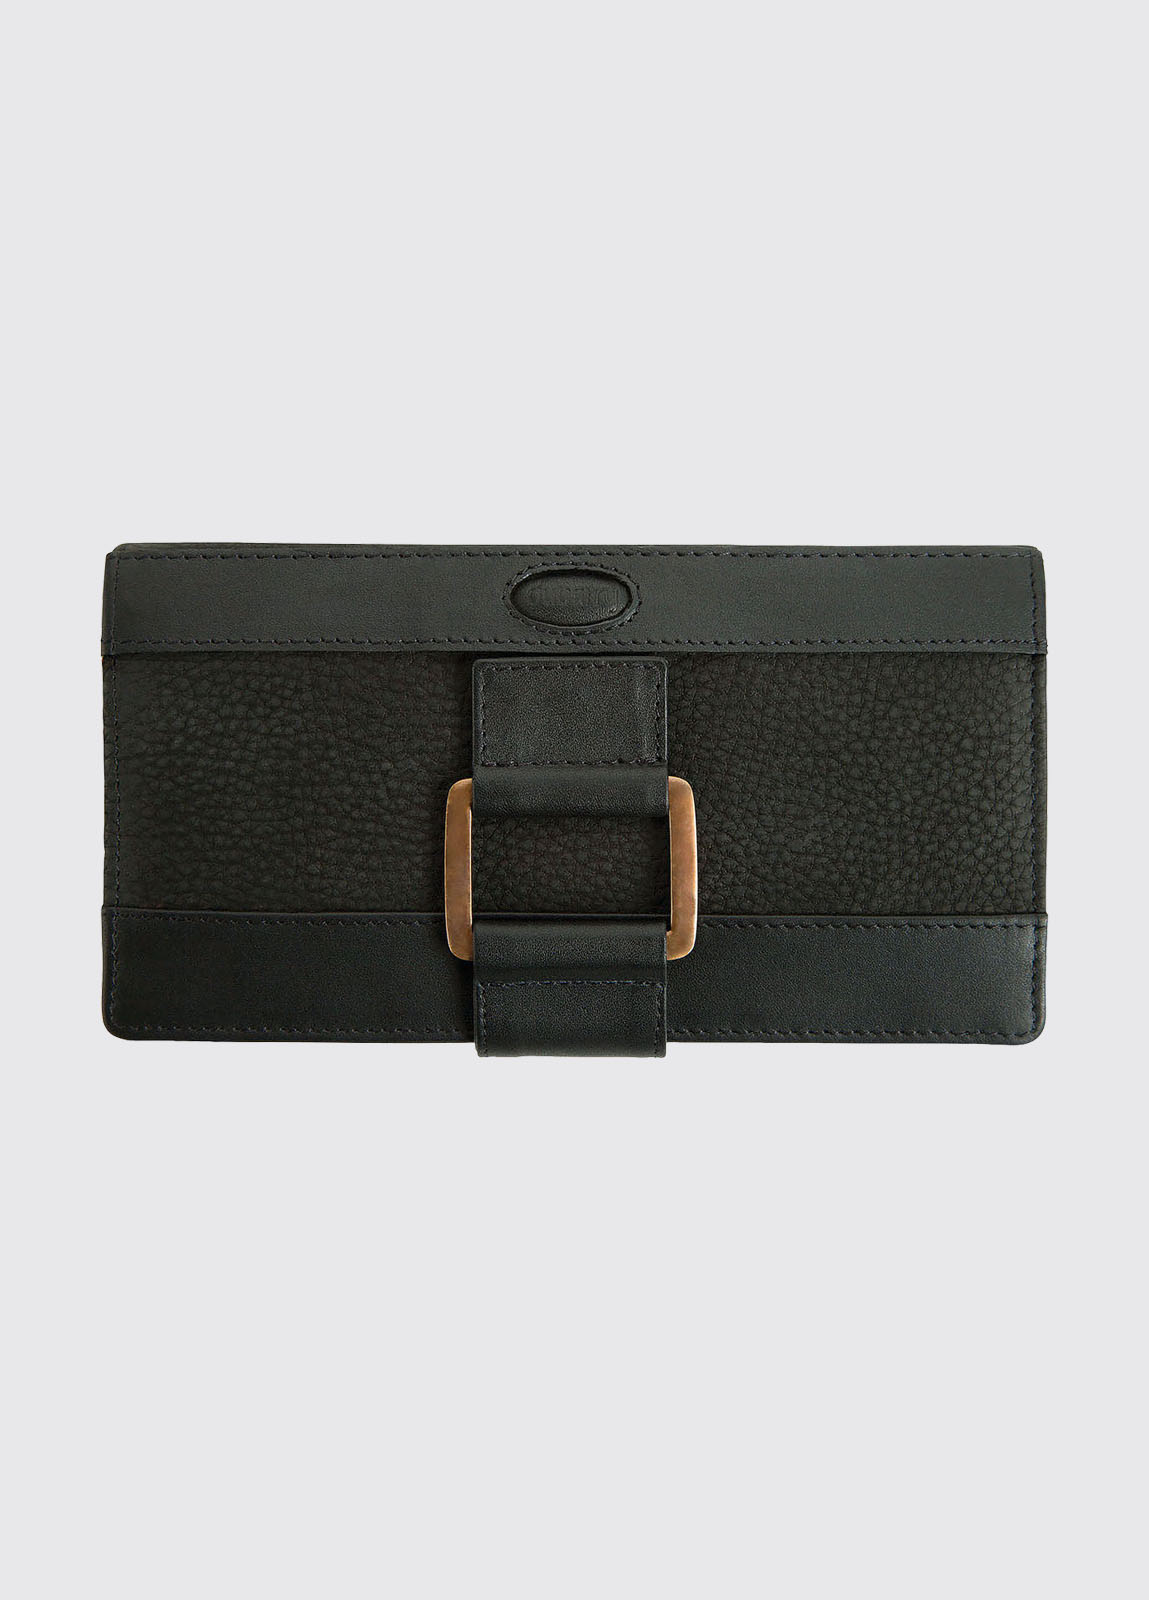 Dunbrody Leather Purse - Black